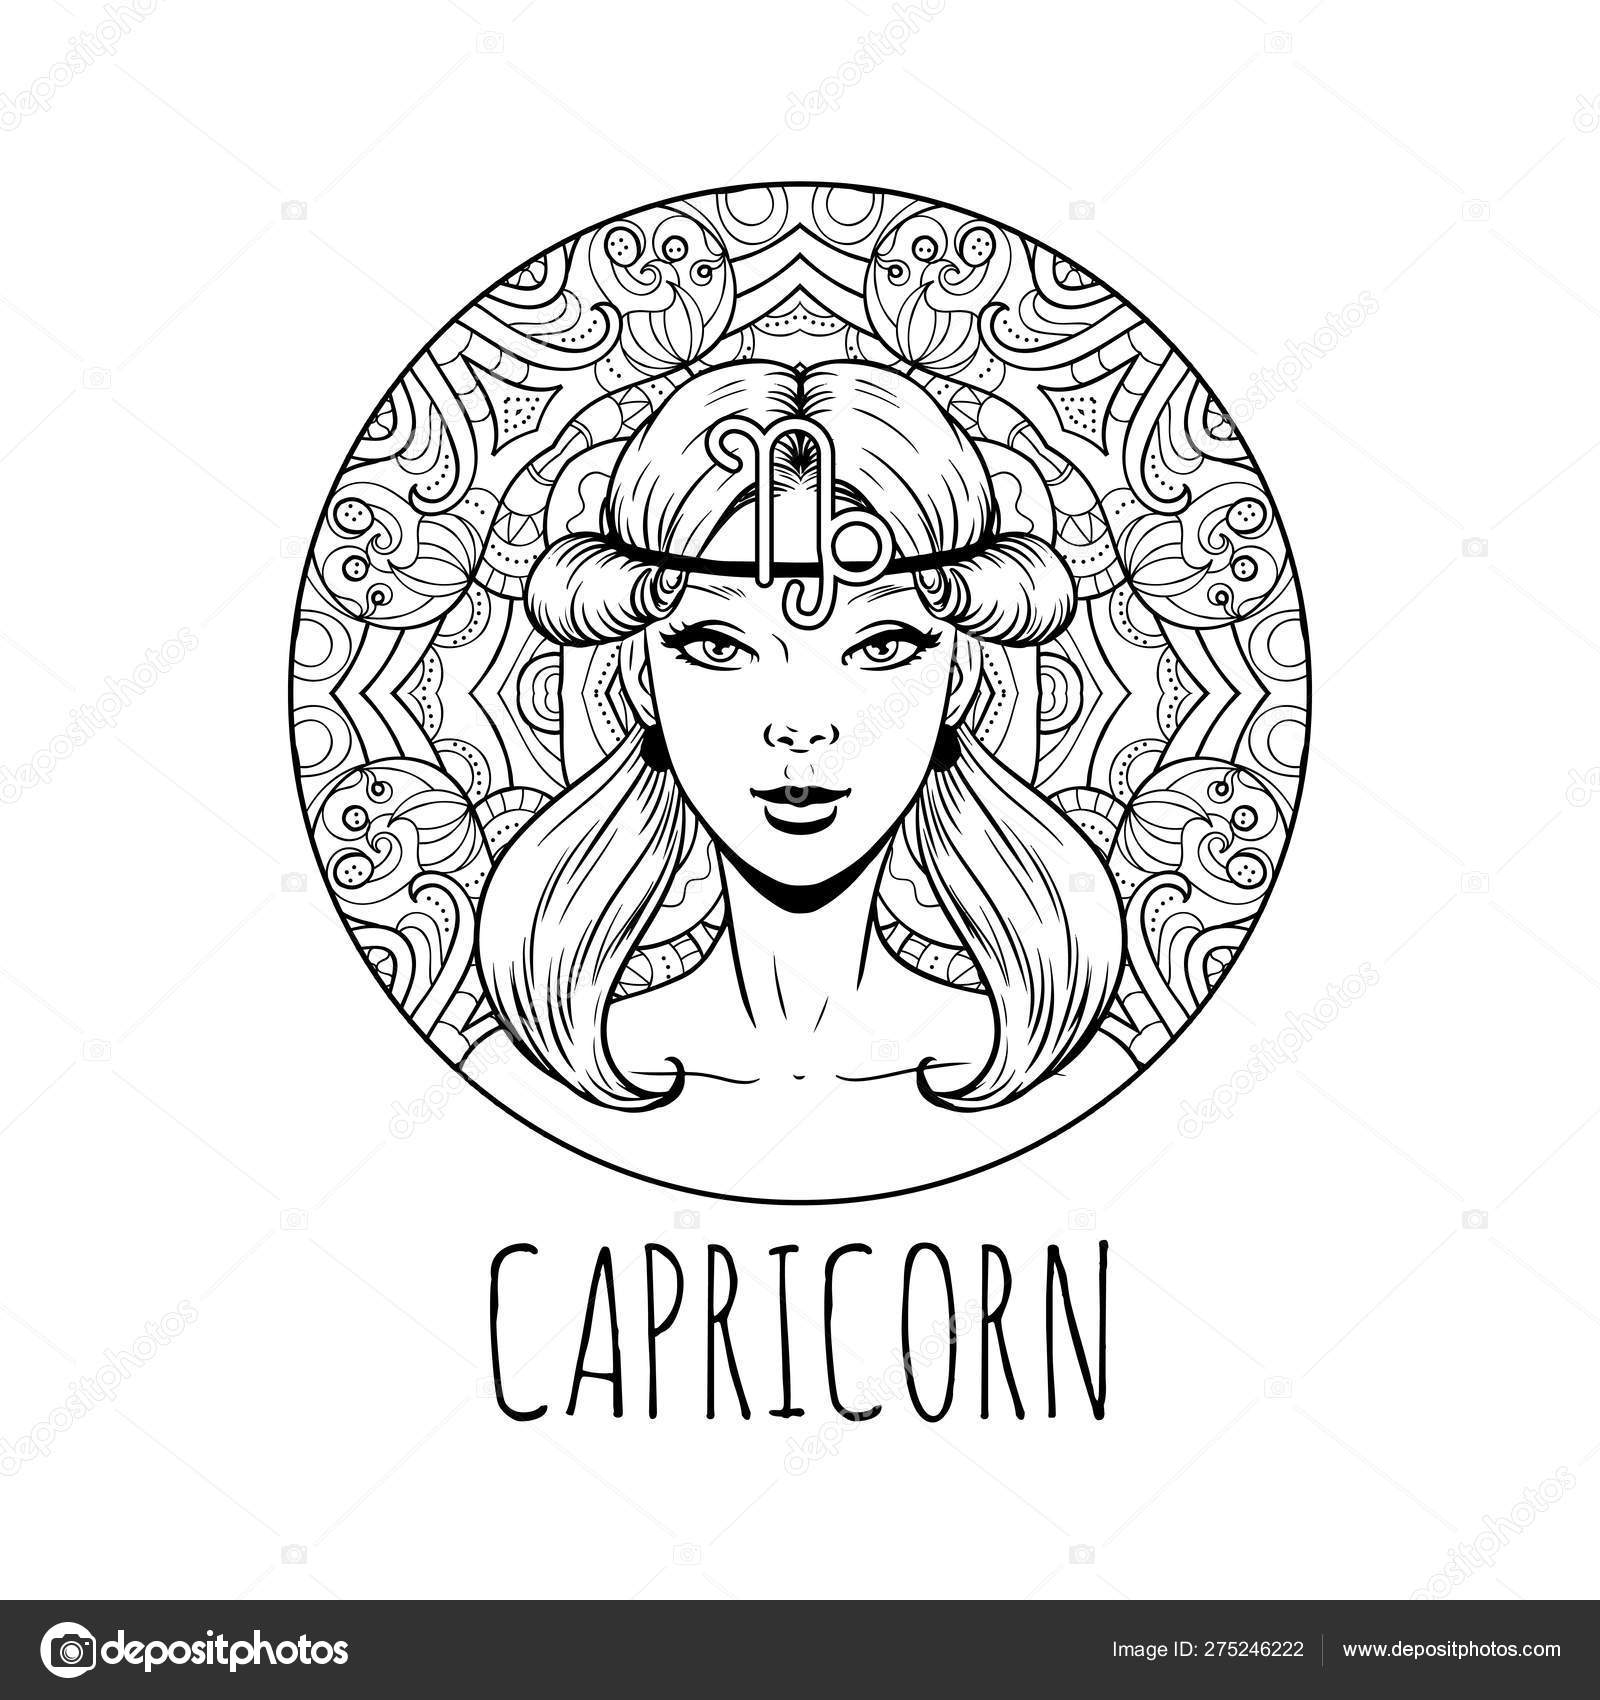 Capricorn Zodiac Sign Artwork Adult Coloring Book Page Beautif Vector Image By C Littlepaw Vector Stock 275246222